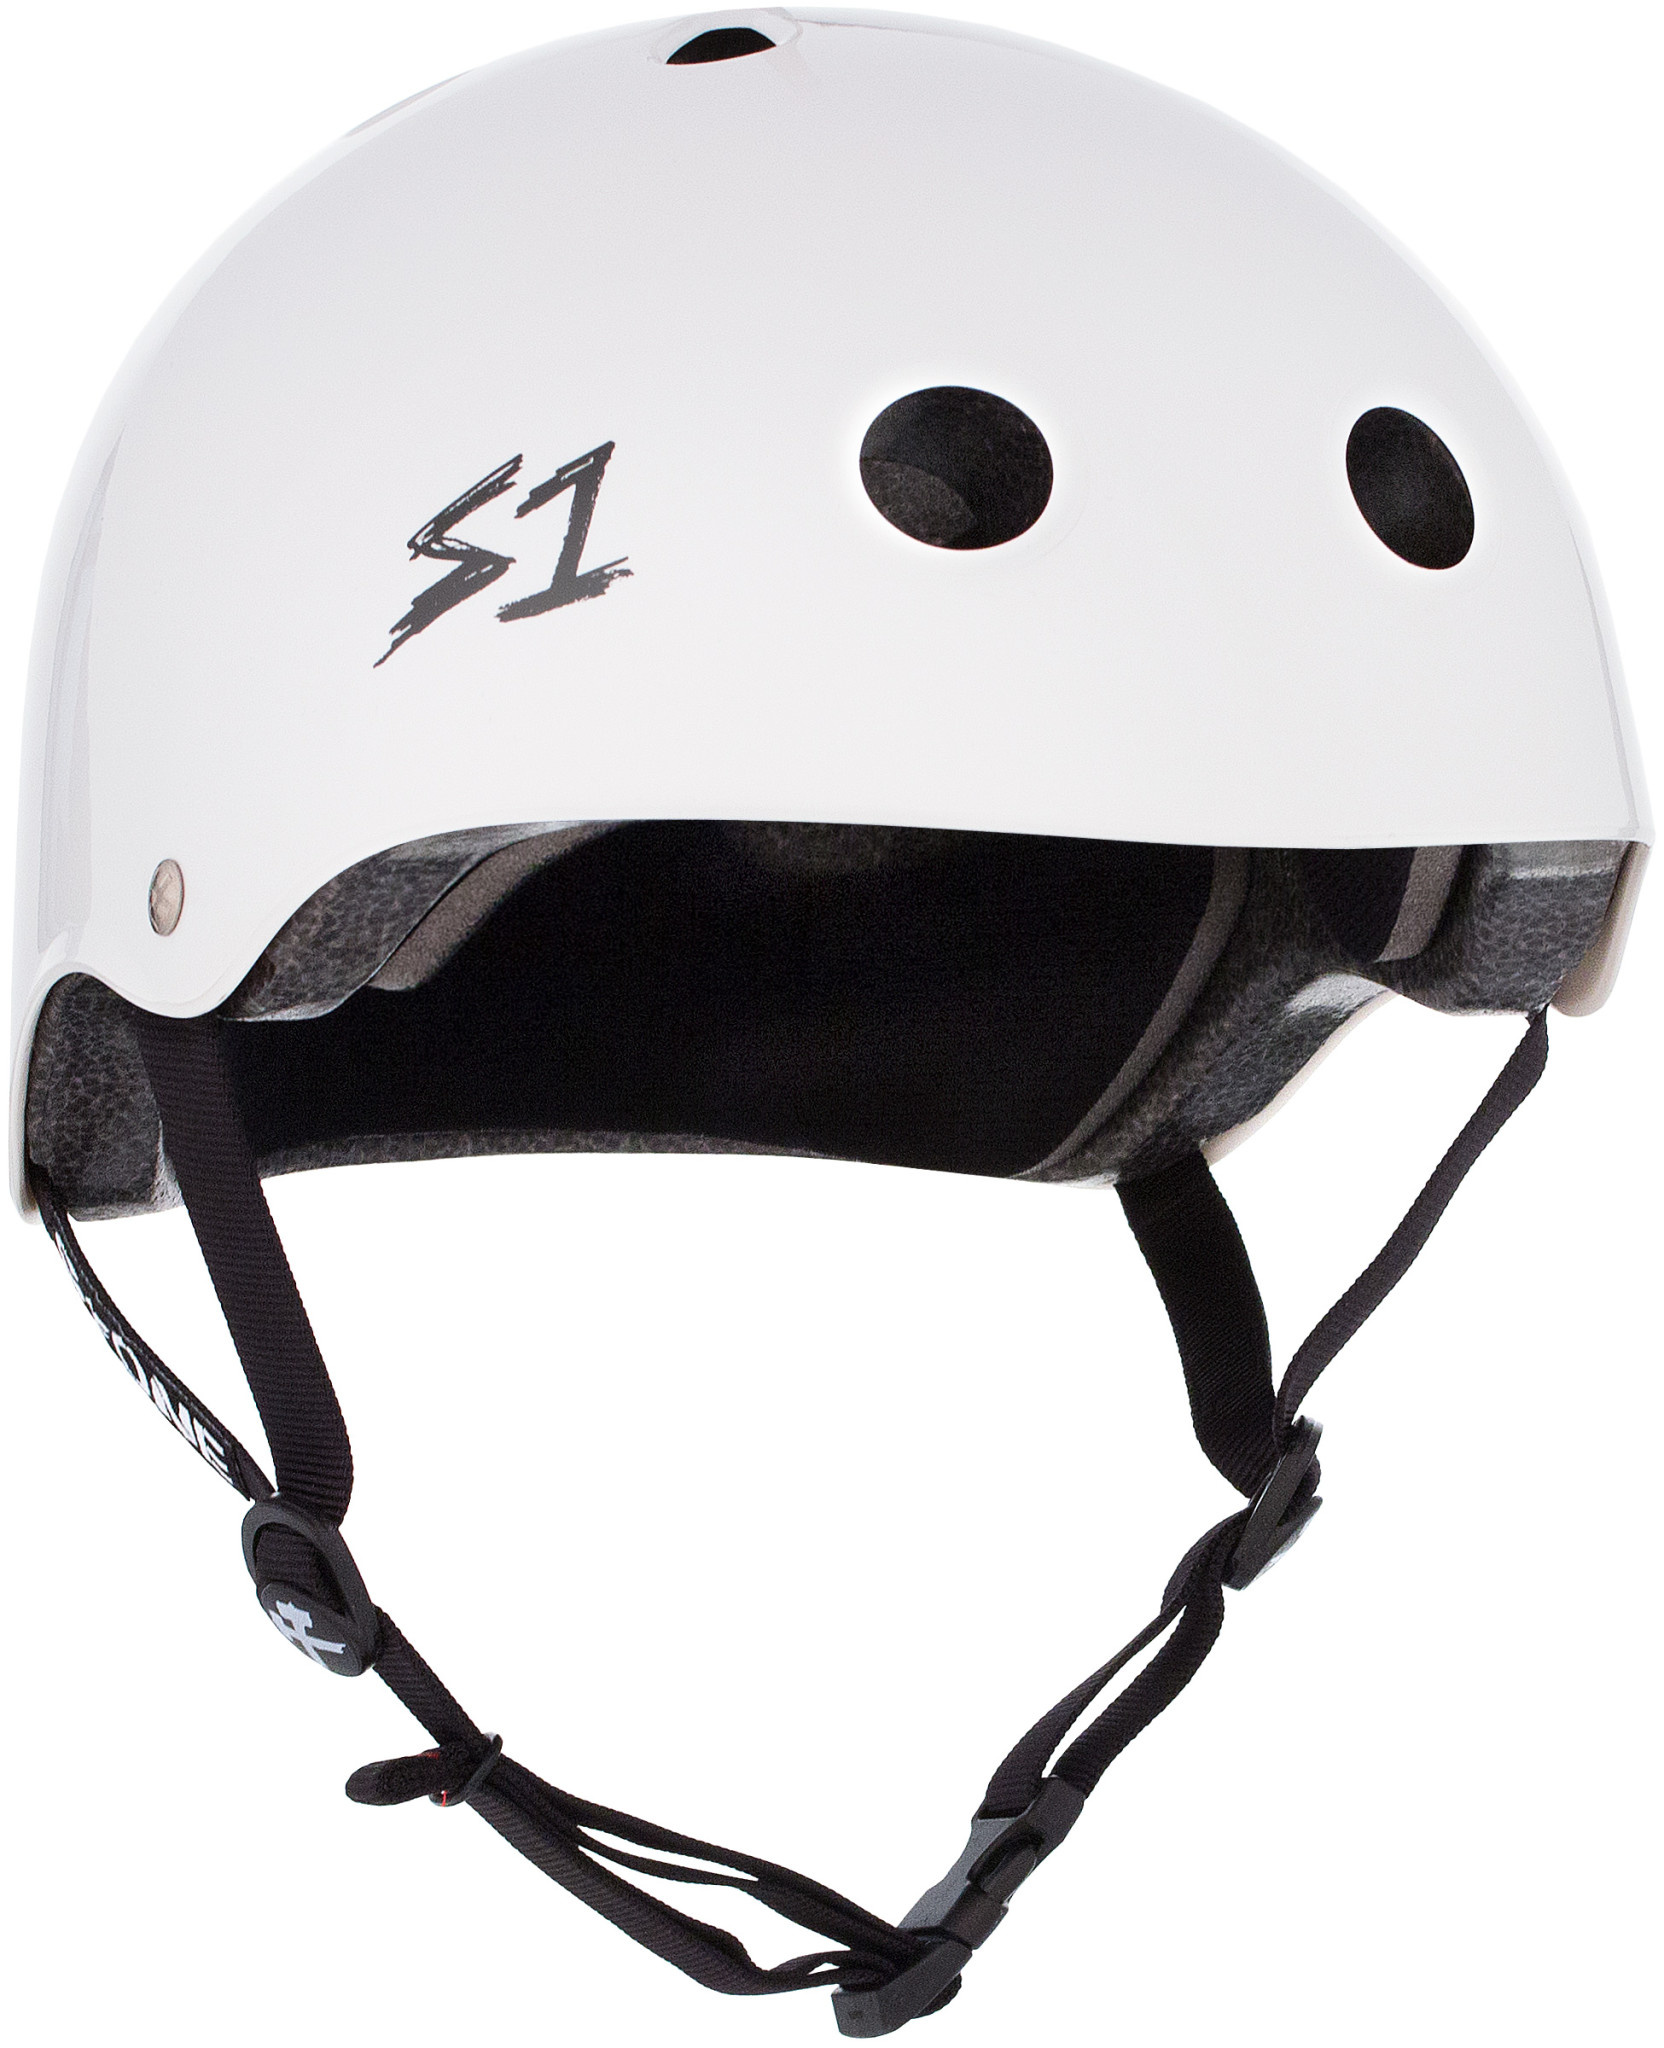 S-1 Lifer Helmet - White Gloss